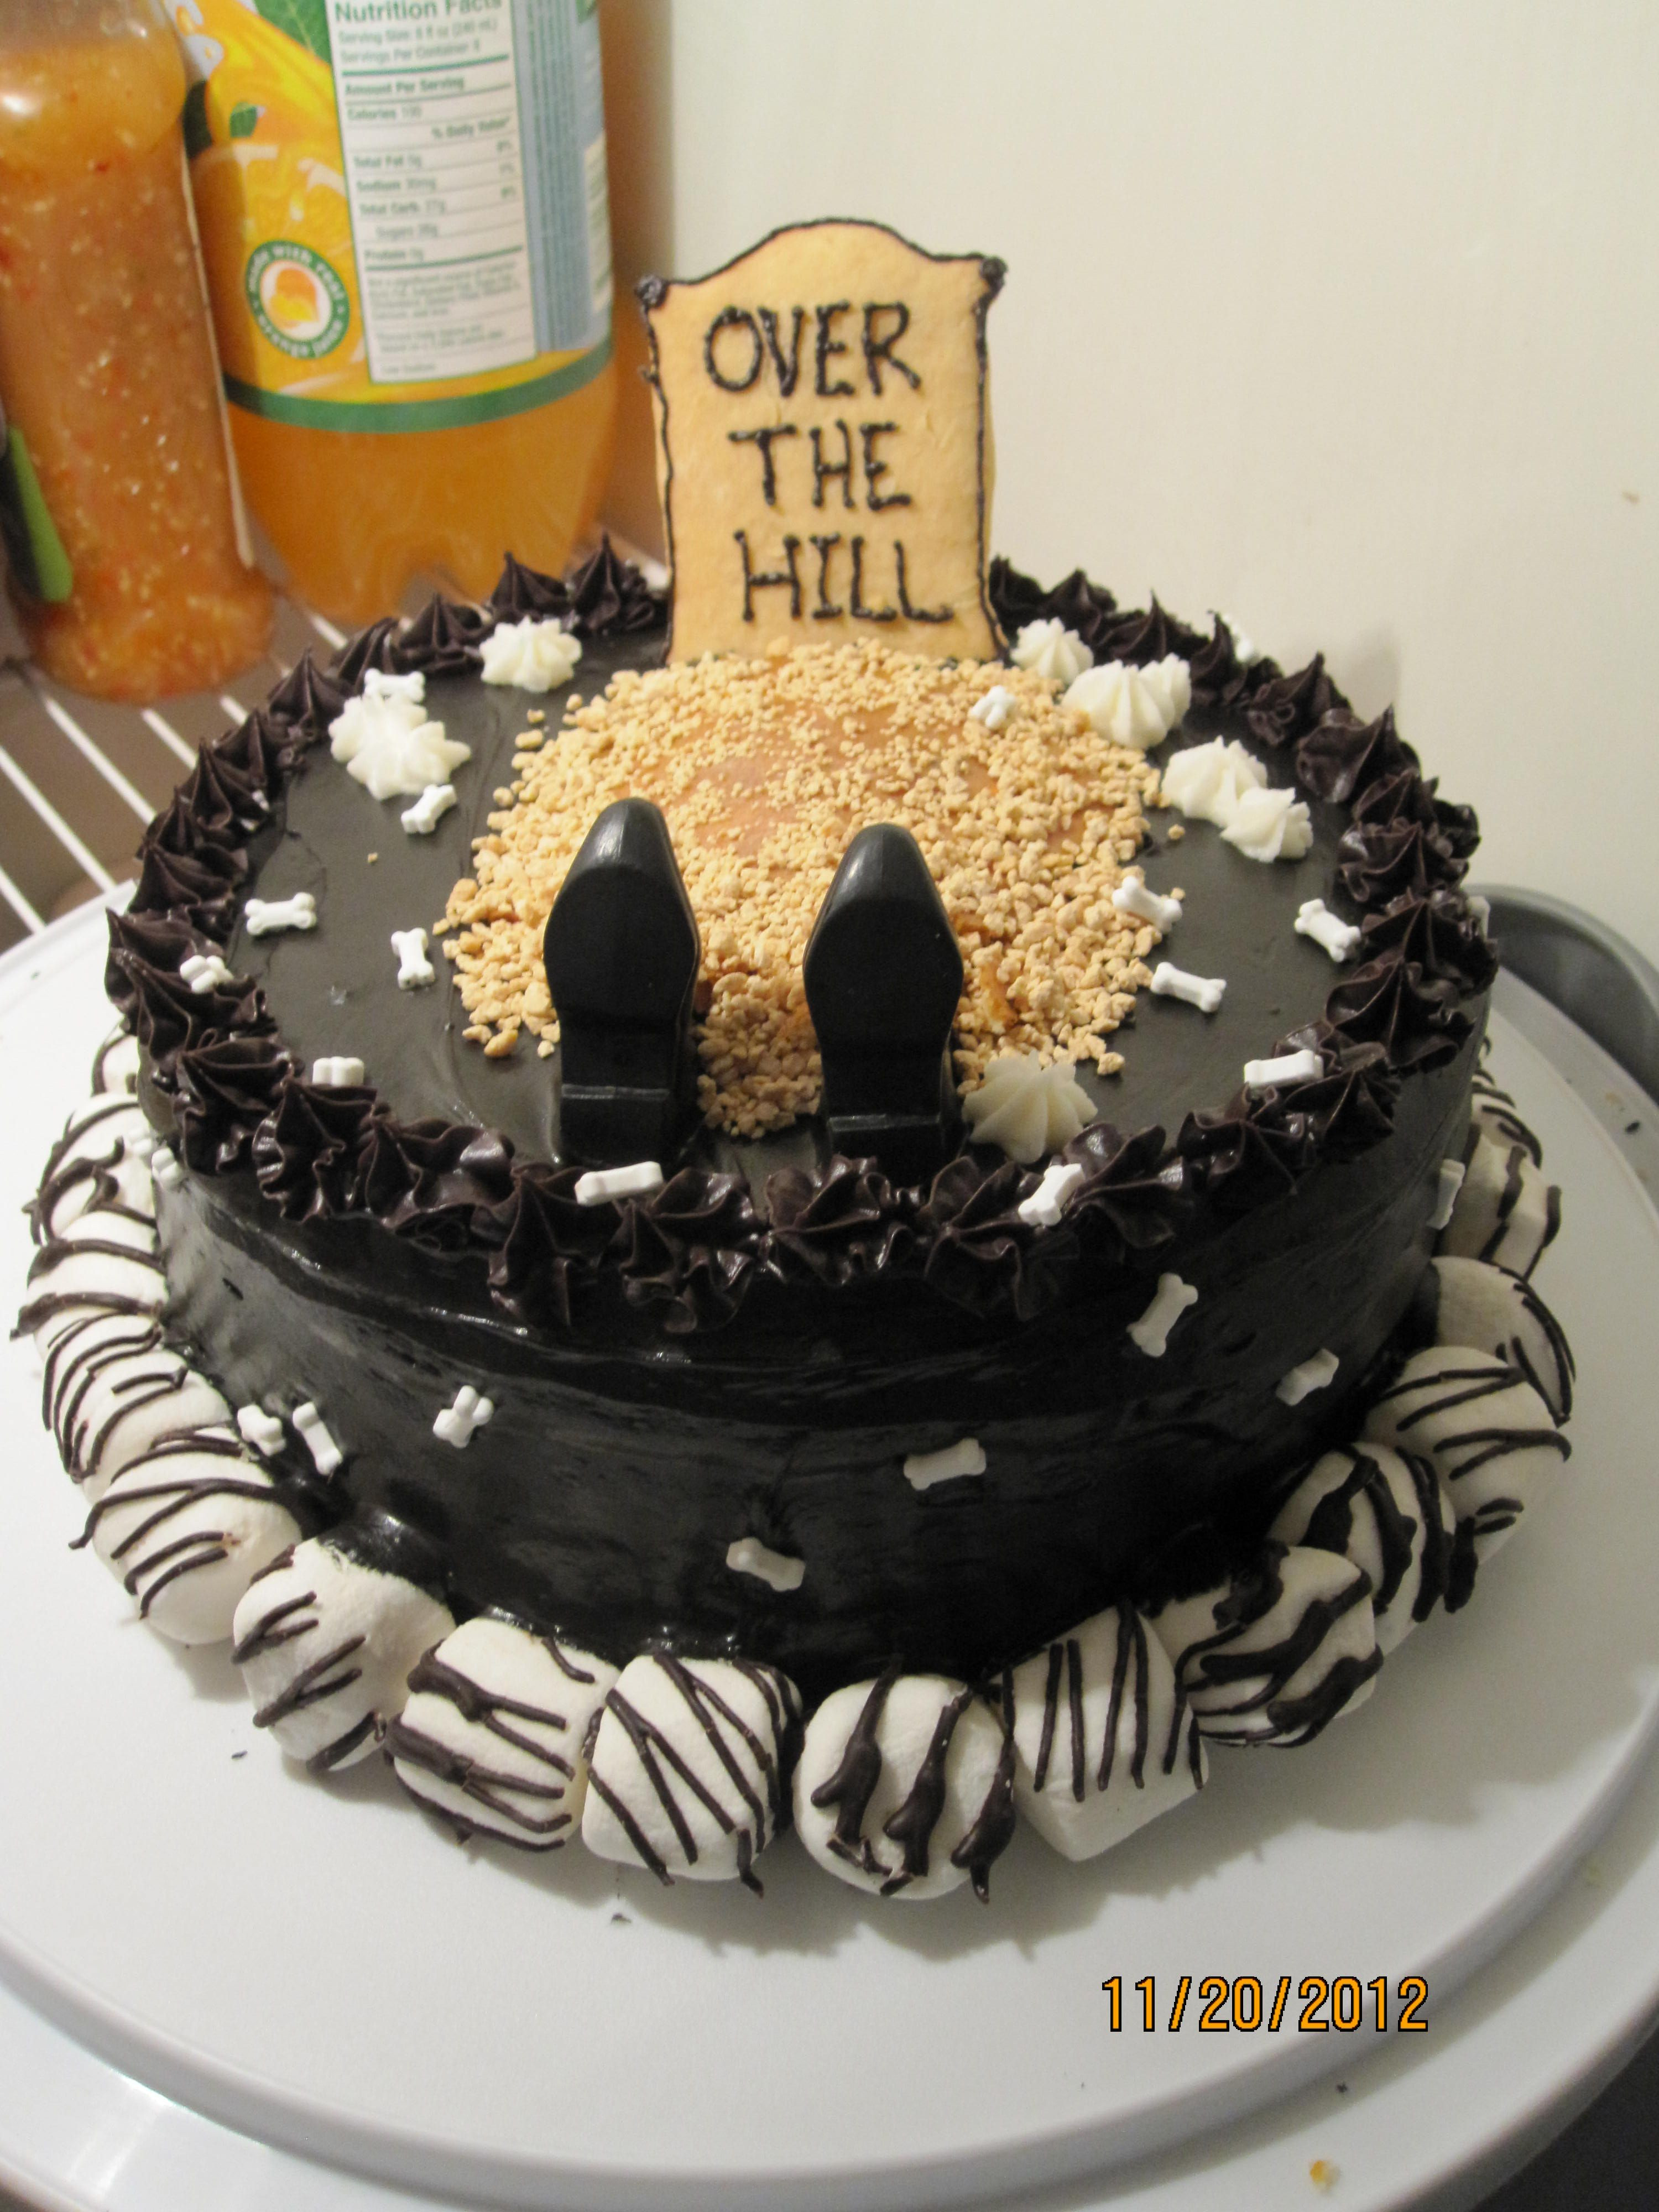 Best ideas about Birthday Cake Designs For Him . Save or Pin Over the hill cake i made My things Now.